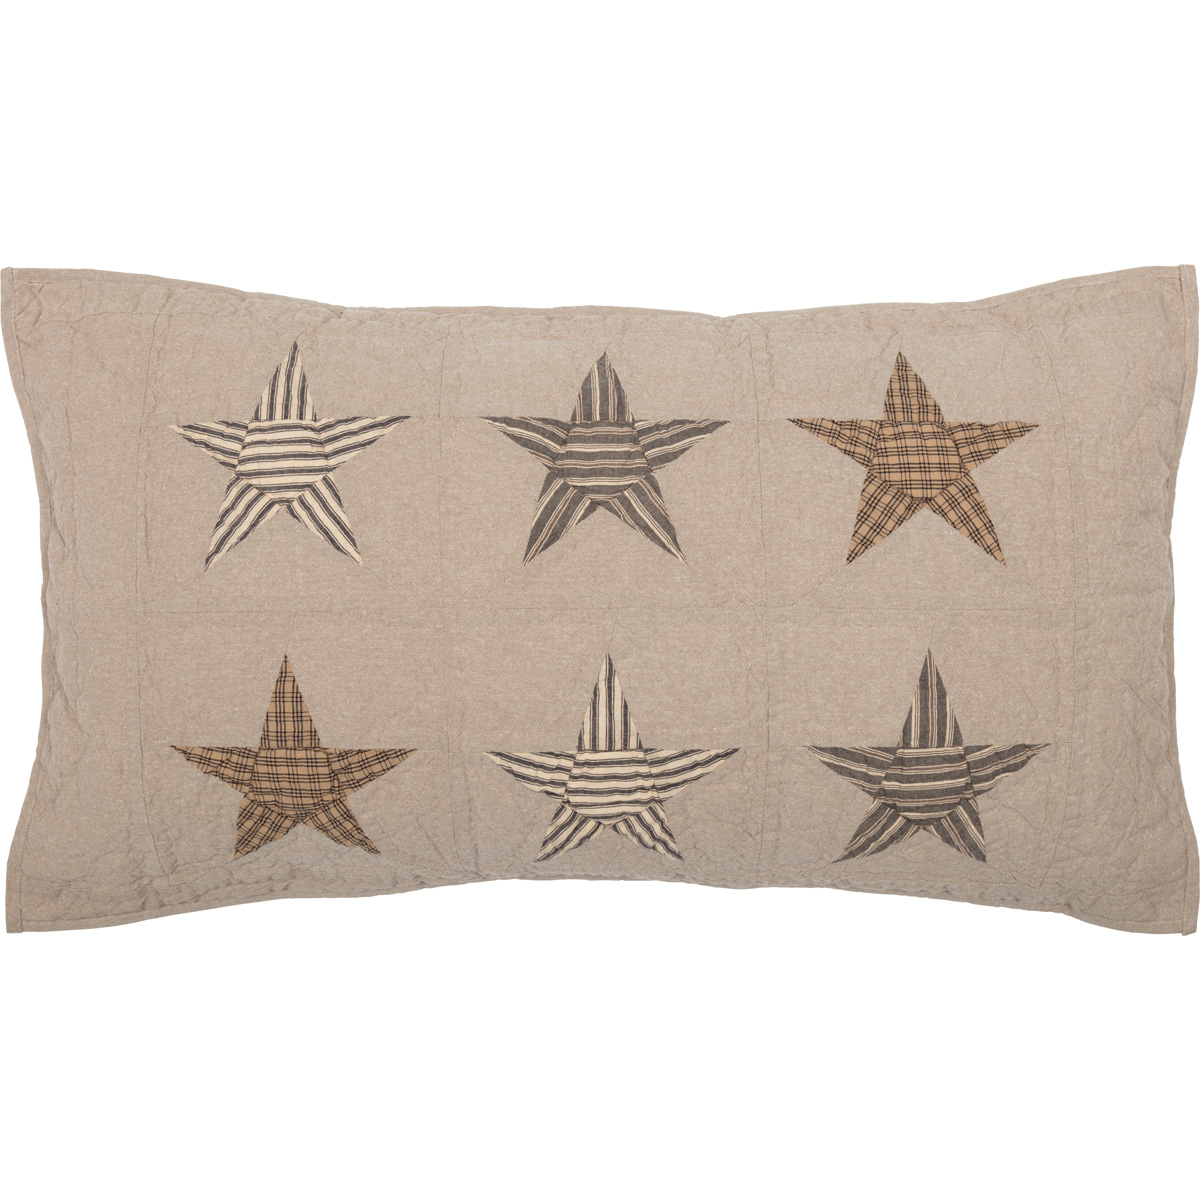 Sawyer Mill Star Charcoal King Sham 21x37